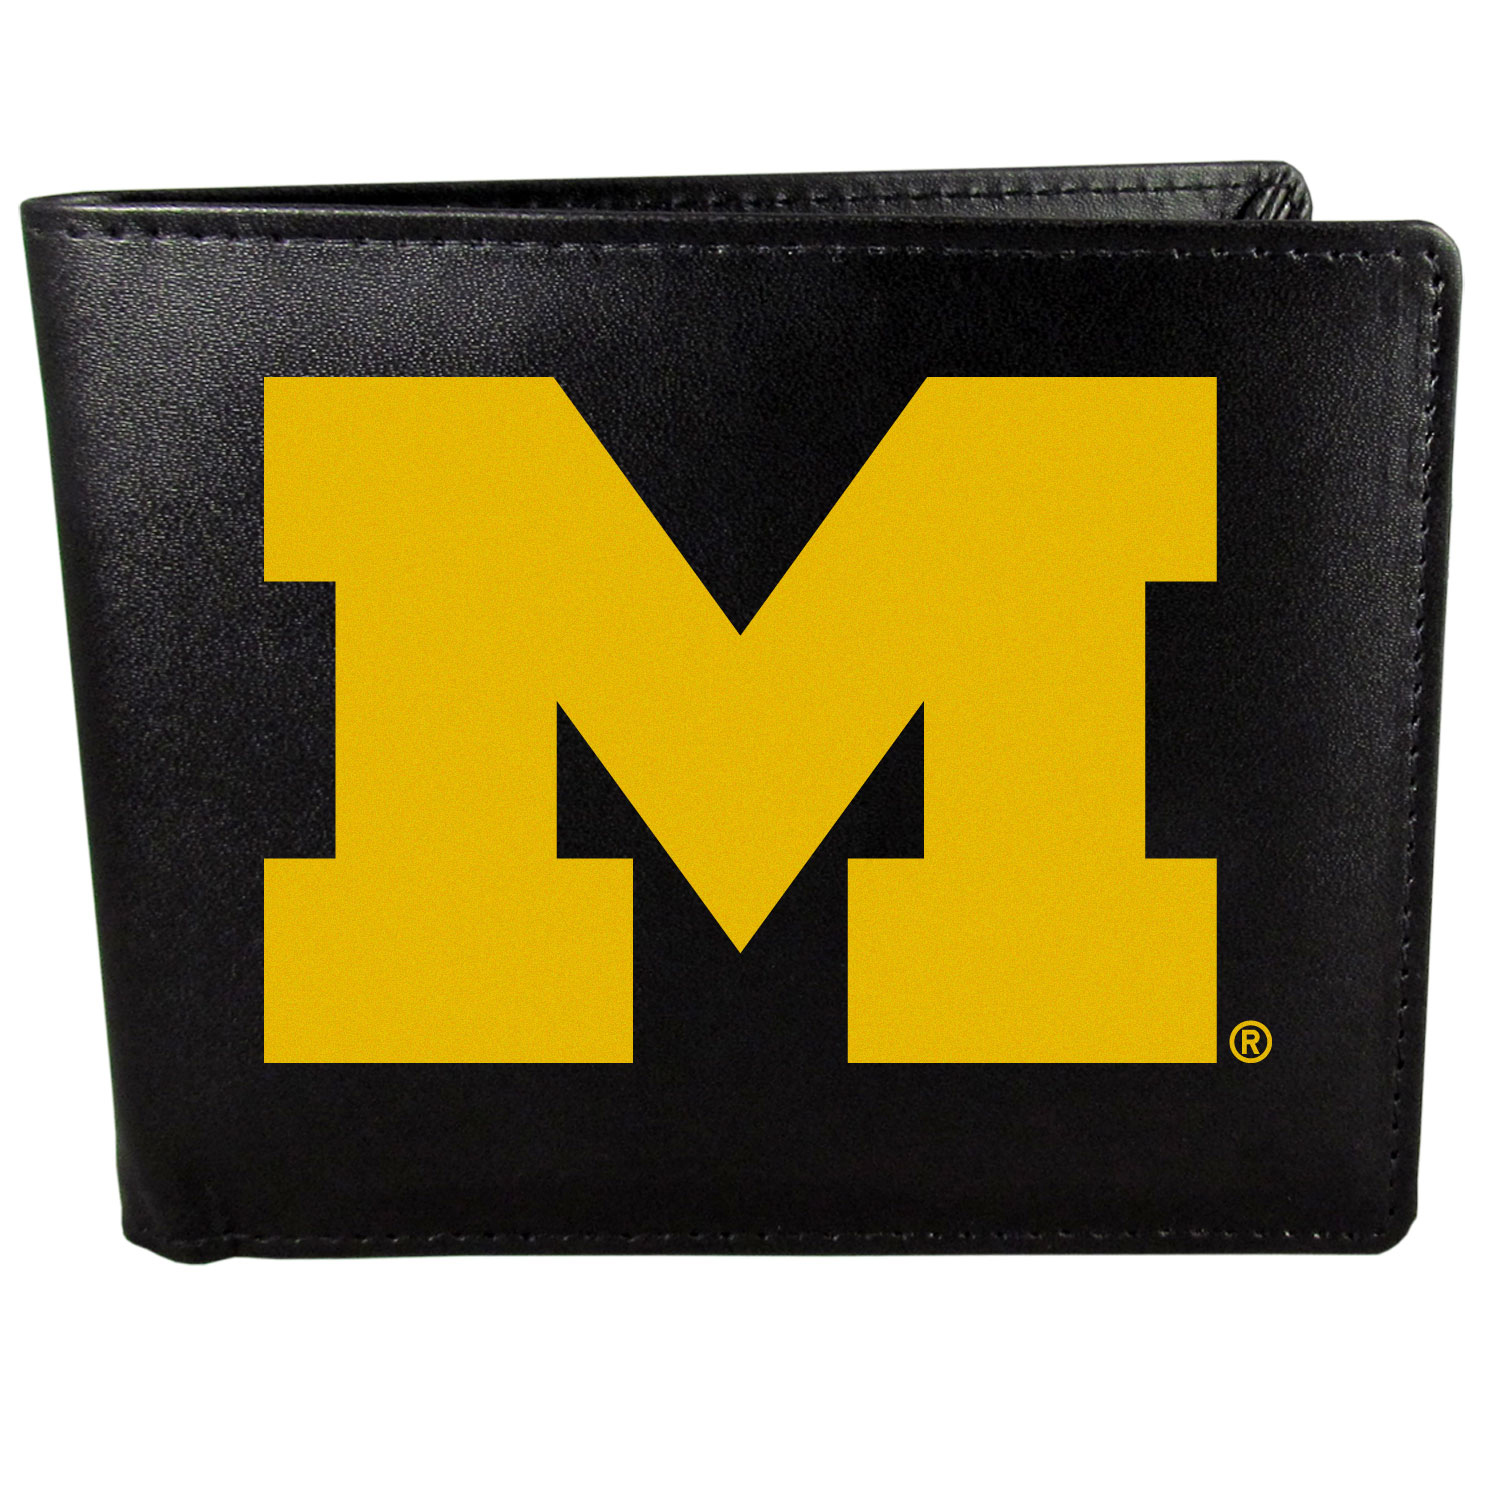 Michigan Wolverines Leather Bi-fold Wallet, Large Logo - Our classic fine leather bi-fold wallet is meticulously crafted with genuine leather that will age beautifully so you will have a quality wallet for years to come. The wallet opens to a large, billfold pocket and numerous credit card slots and has a convenient windowed ID slot. The front of the wallet features an extra large Michigan Wolverines printed logo.